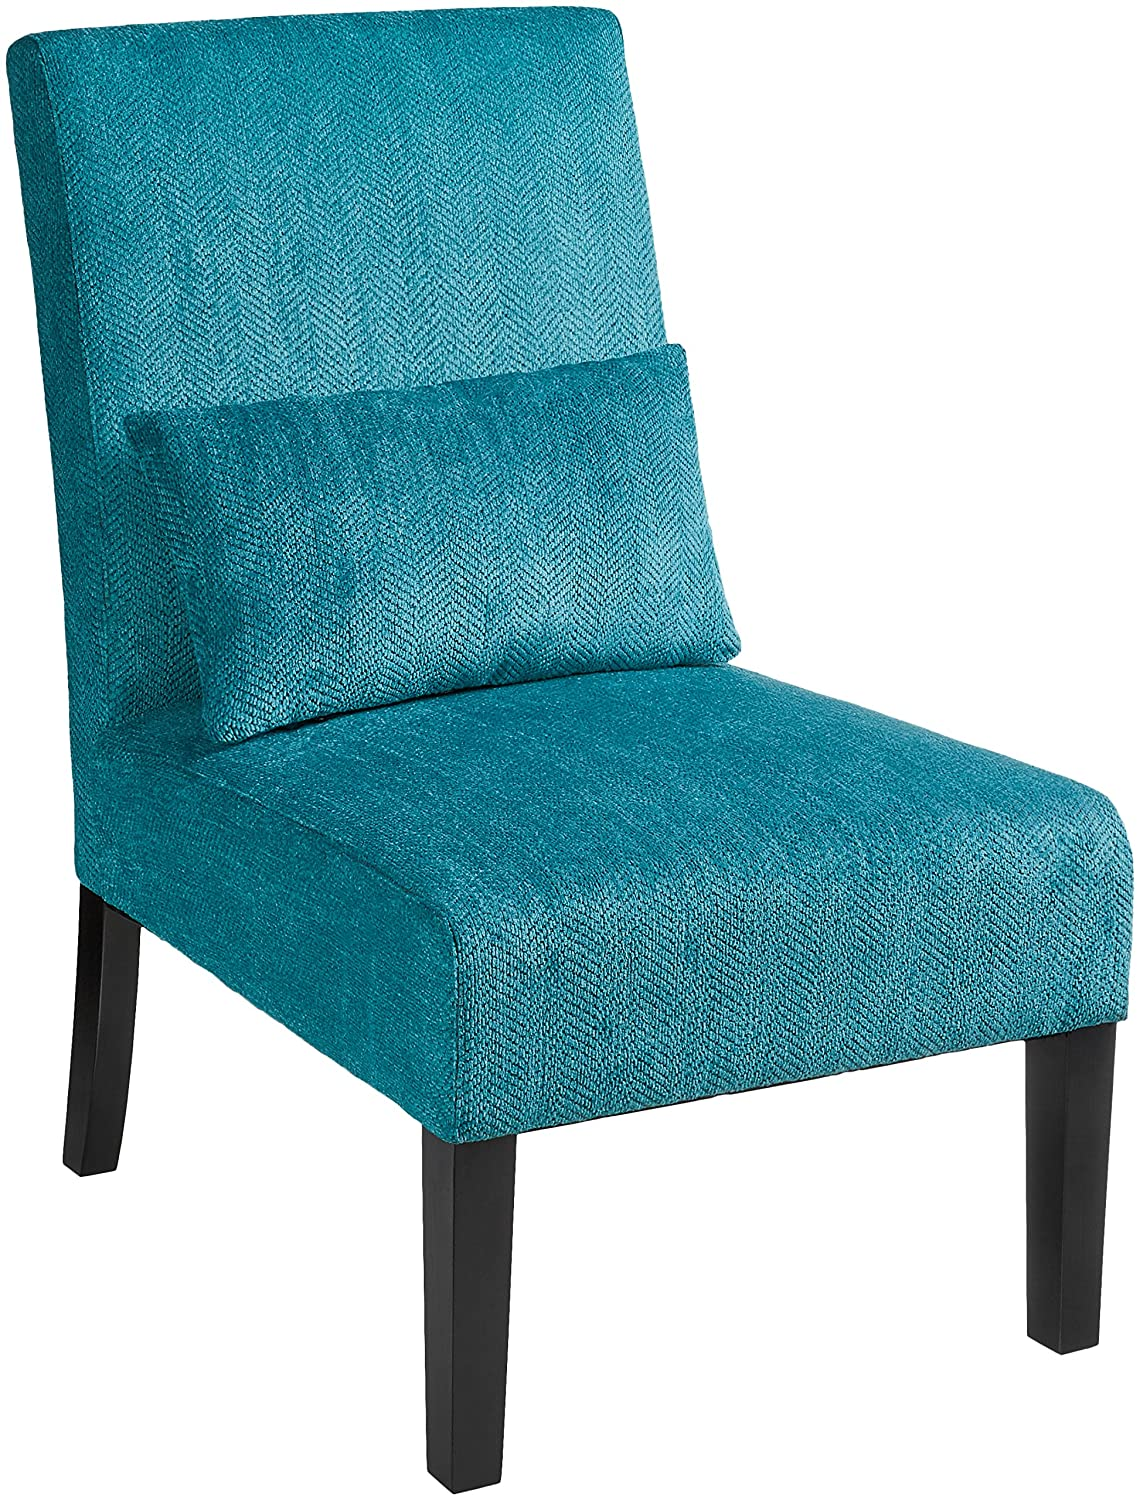 Best Accent Chair Reviews 18